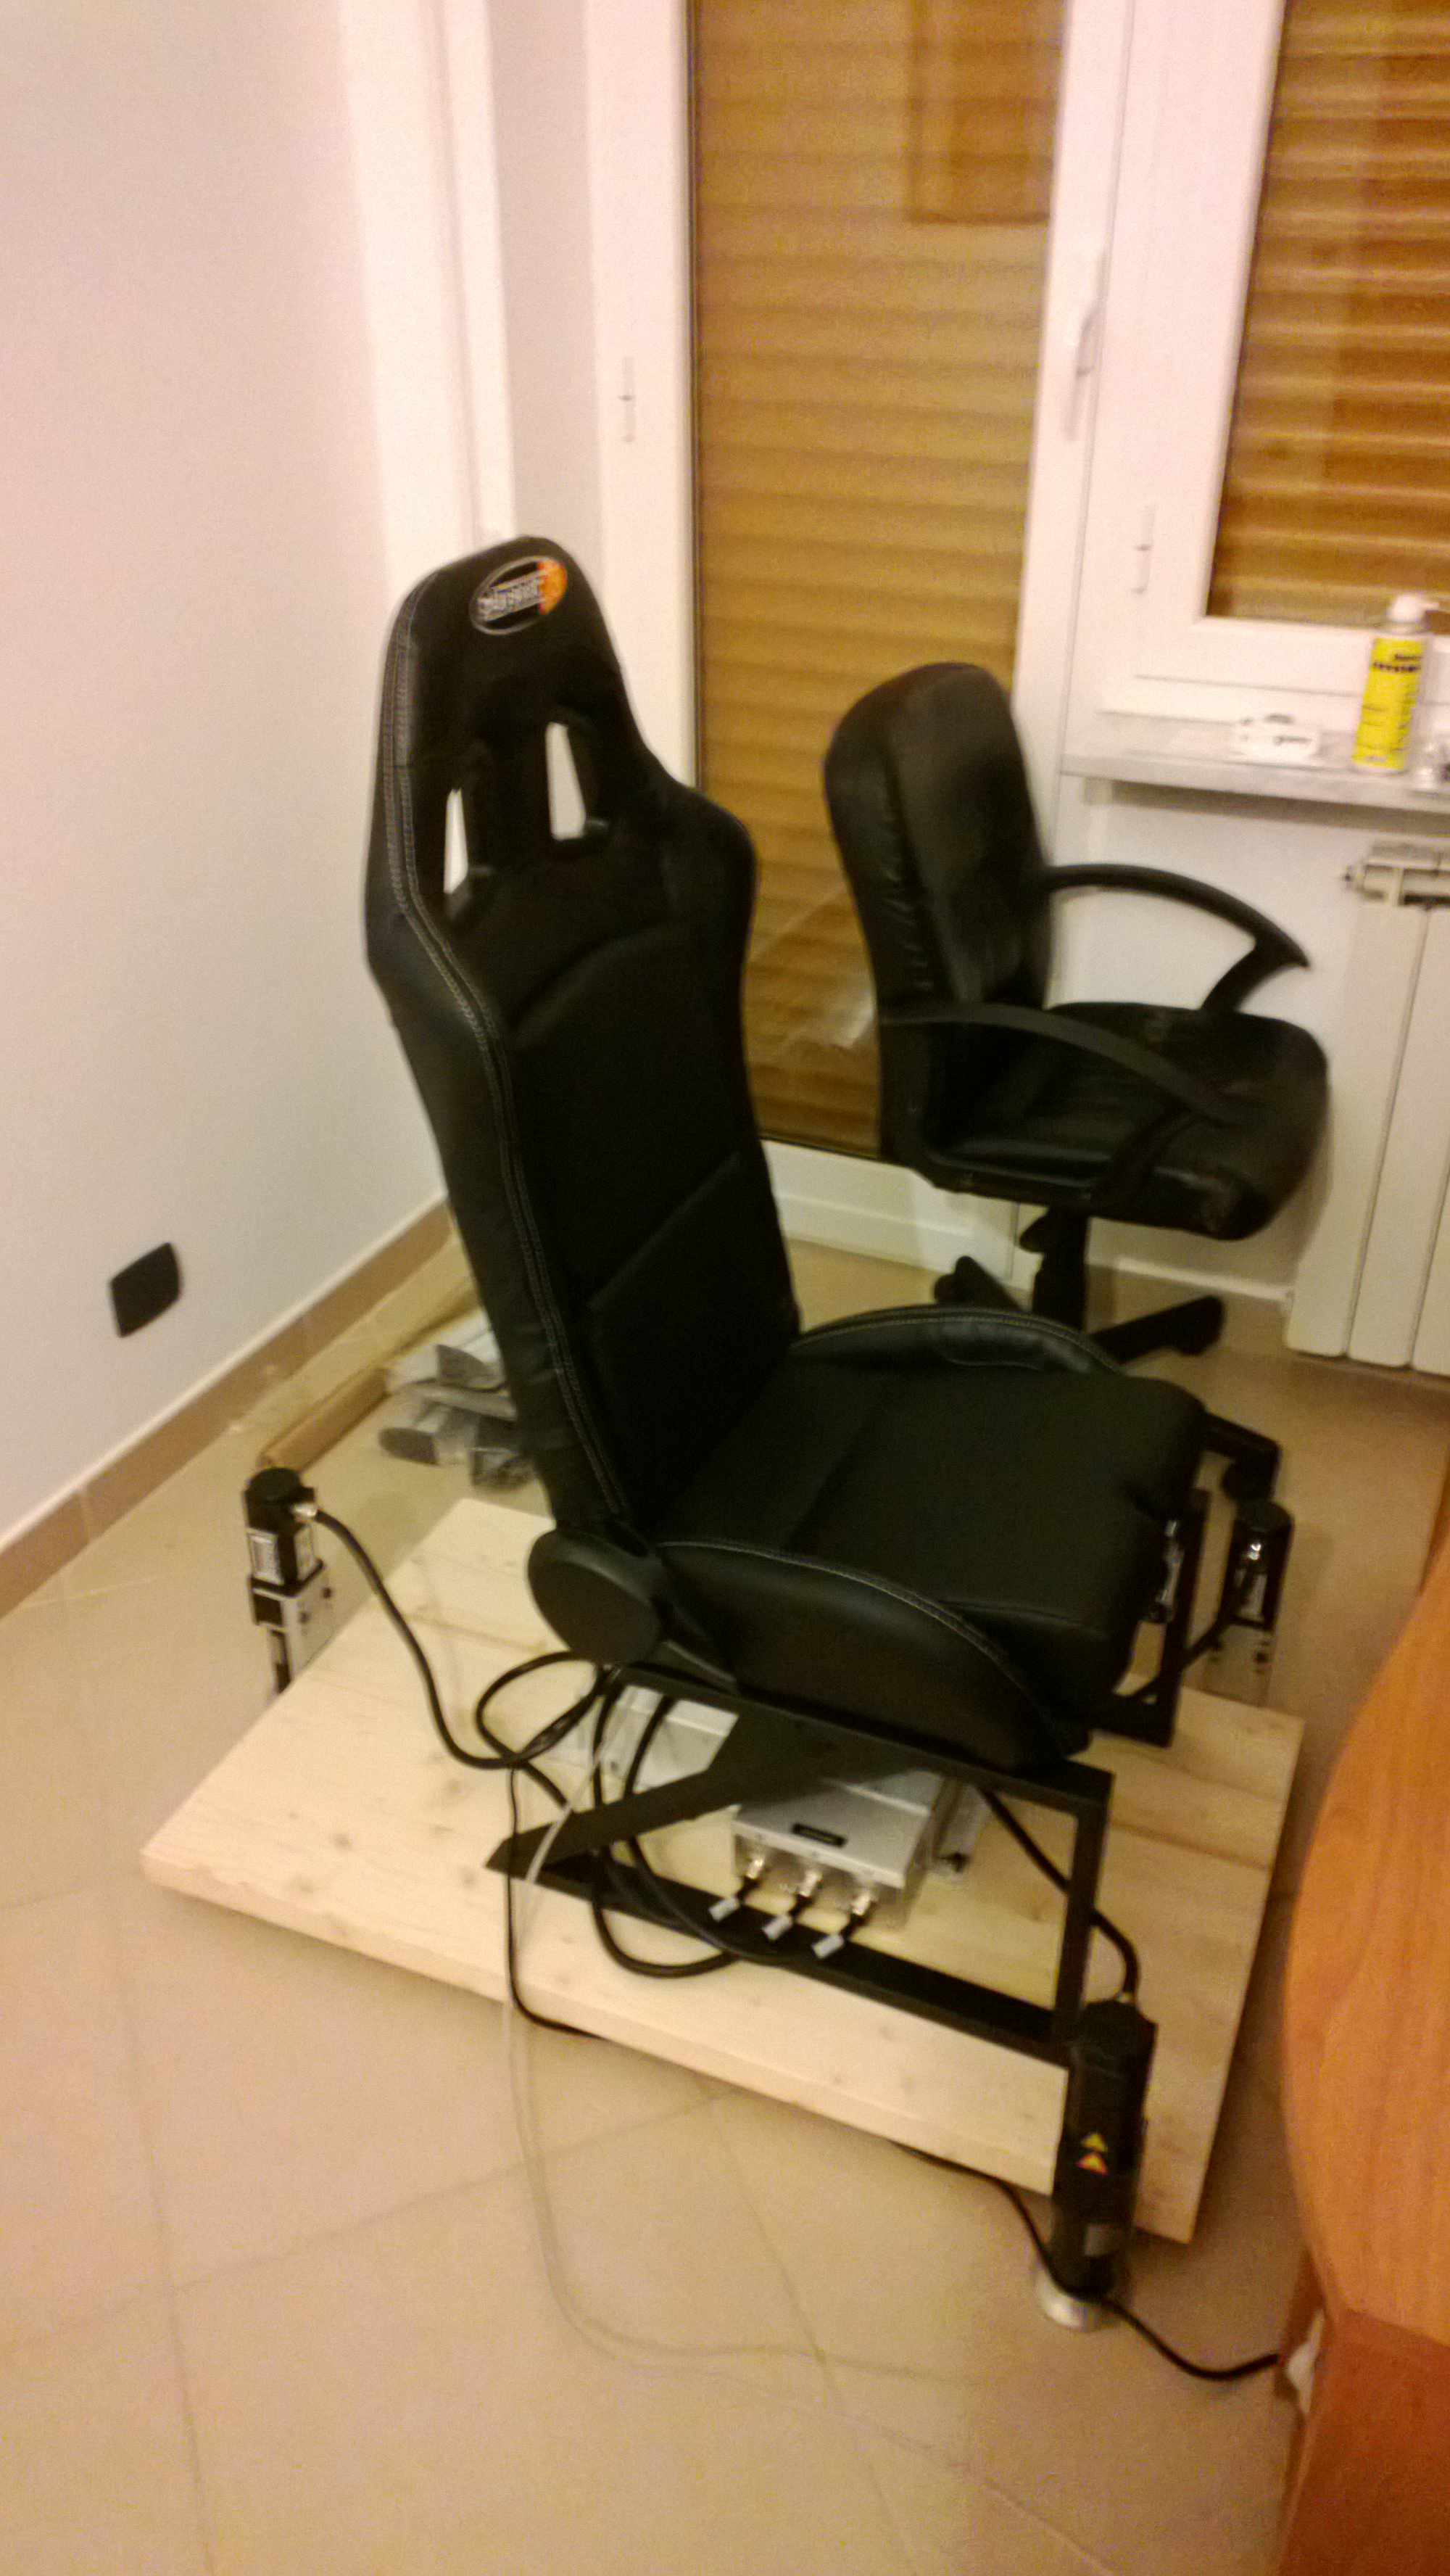 flight simulator chair motion hanging stand walmart tutorial building your platform with dbox 3250i